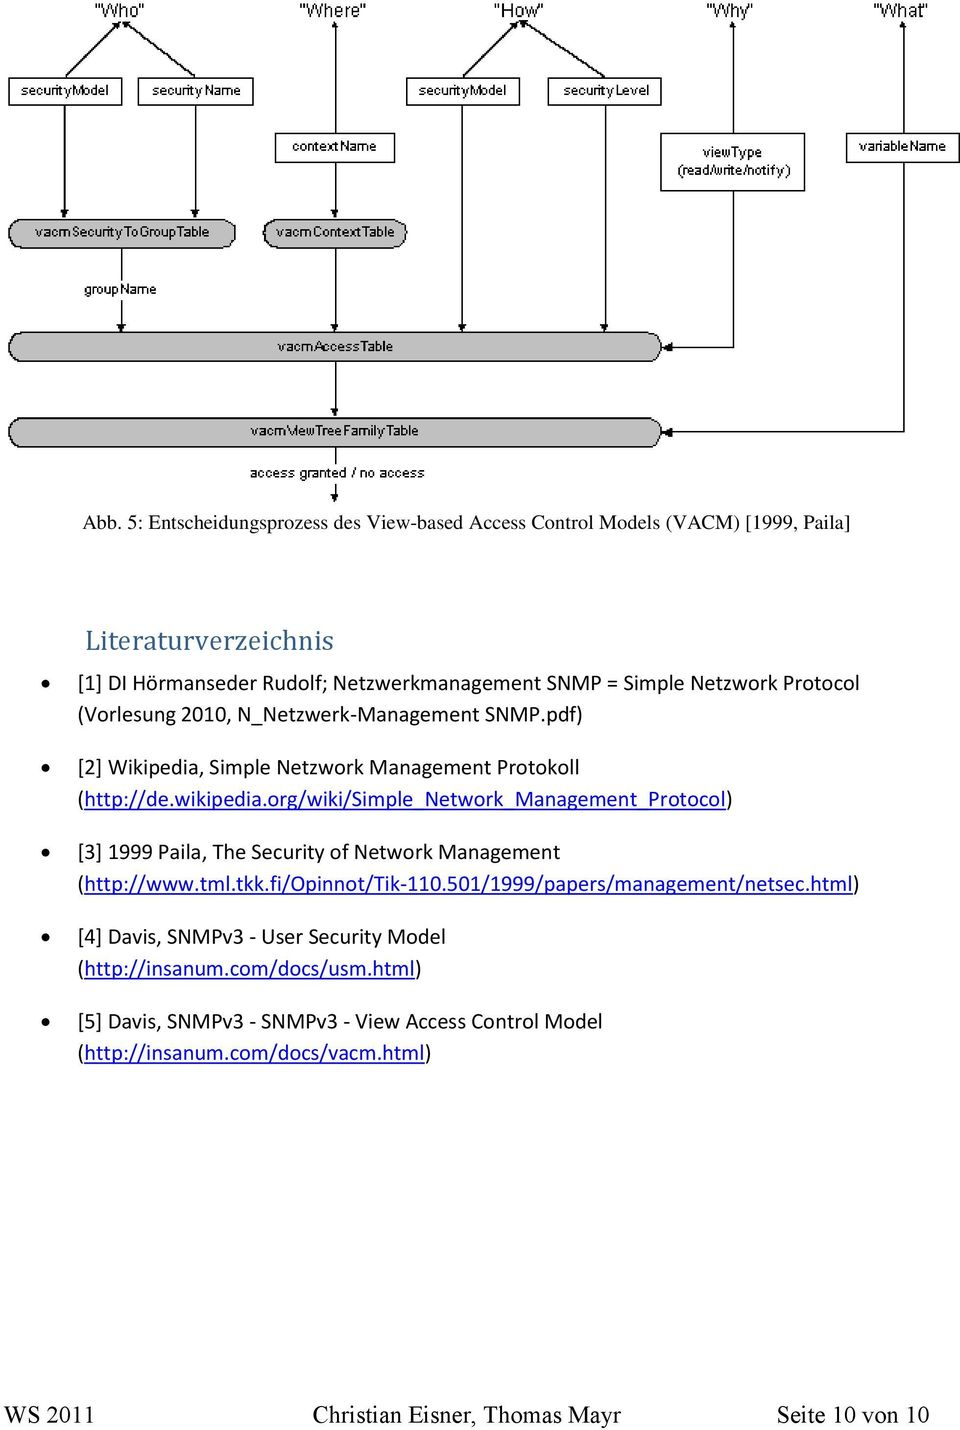 org/wiki/simple_network_management_protocol) [3] 1999 Paila, The Security of Network Management (http://www.tml.tkk.fi/opinnot/tik-110.501/1999/papers/management/netsec.